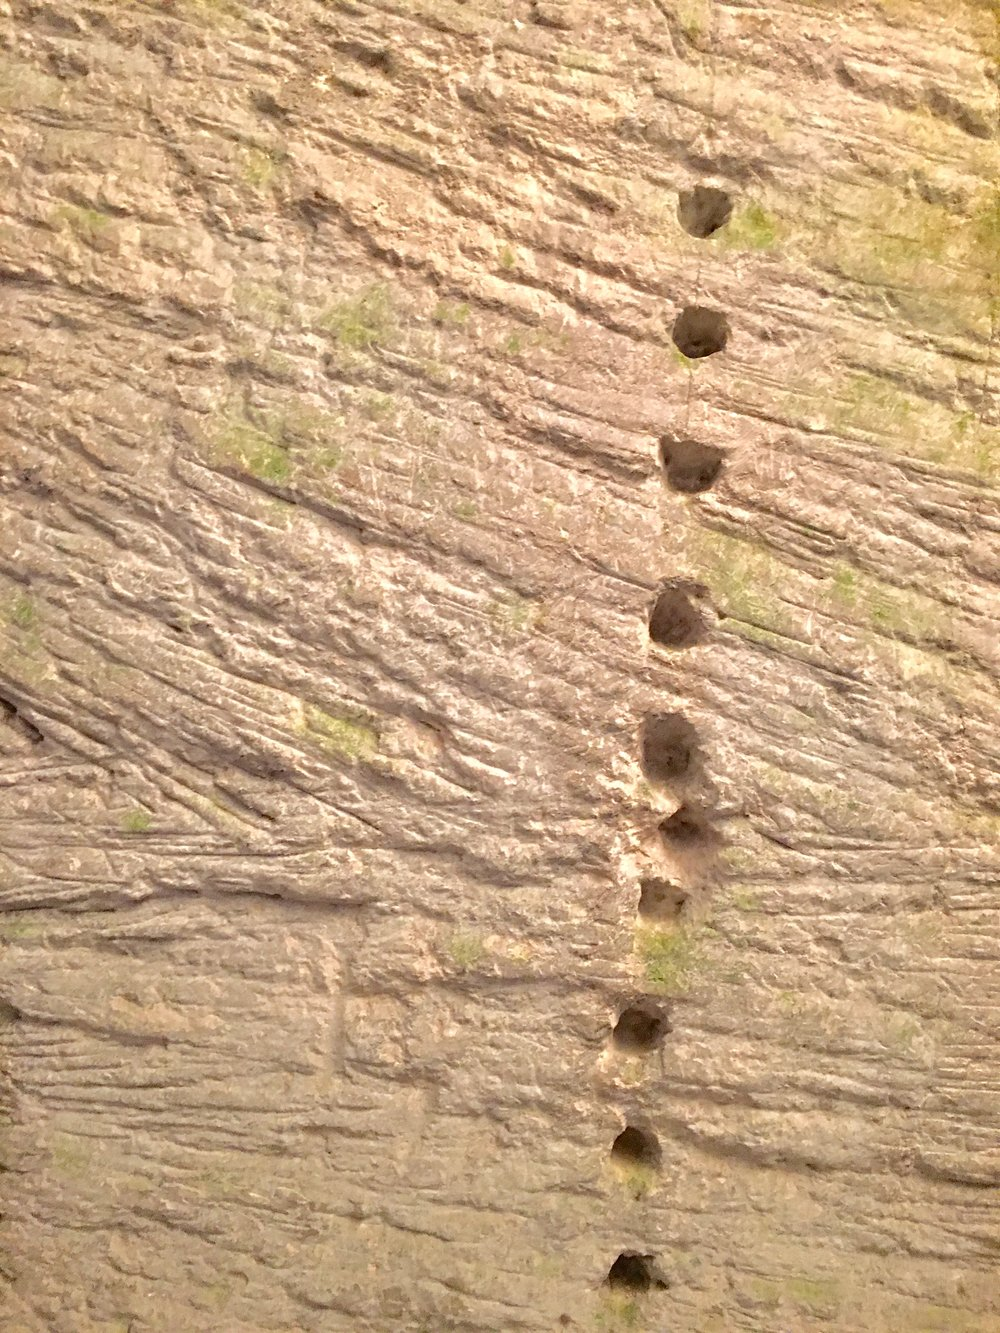 Patterns of the lance holes on the rock face, delineating a block of stone to be quarried (photograph J. Cook)